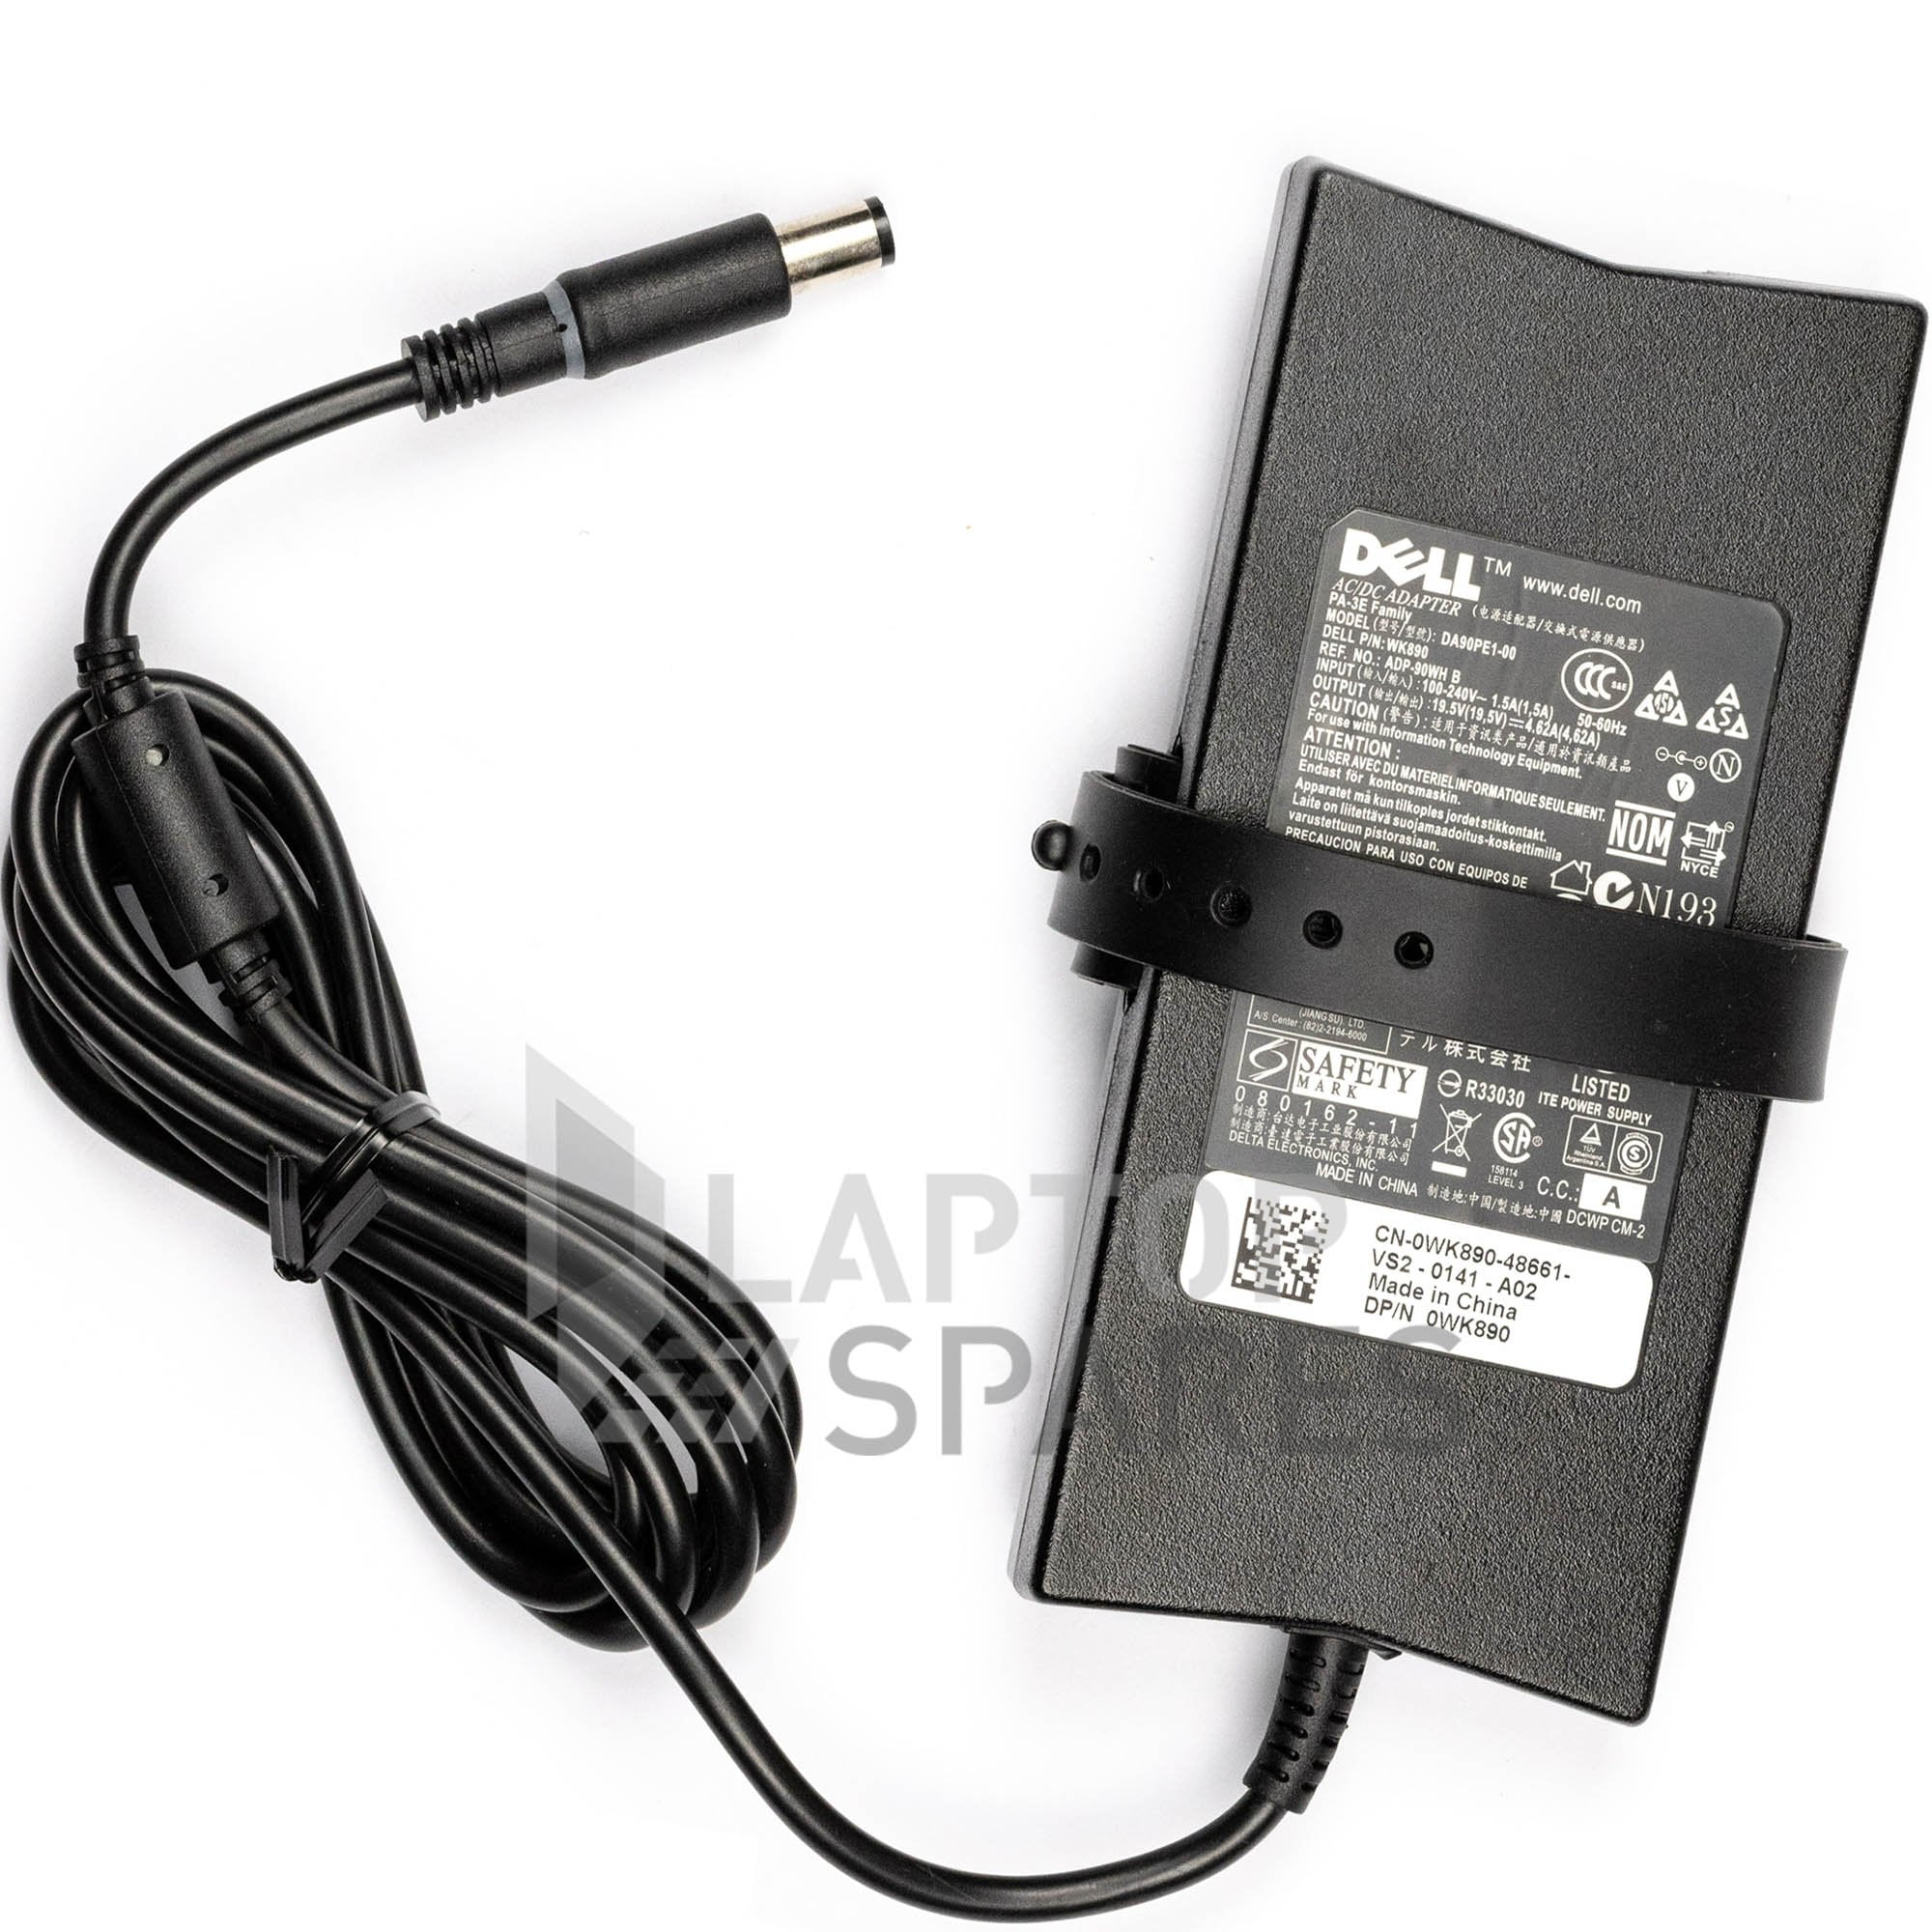 Battery Charger Power Ac Adapter For Dell Studio XPS 1340 1640 1645 Notebook